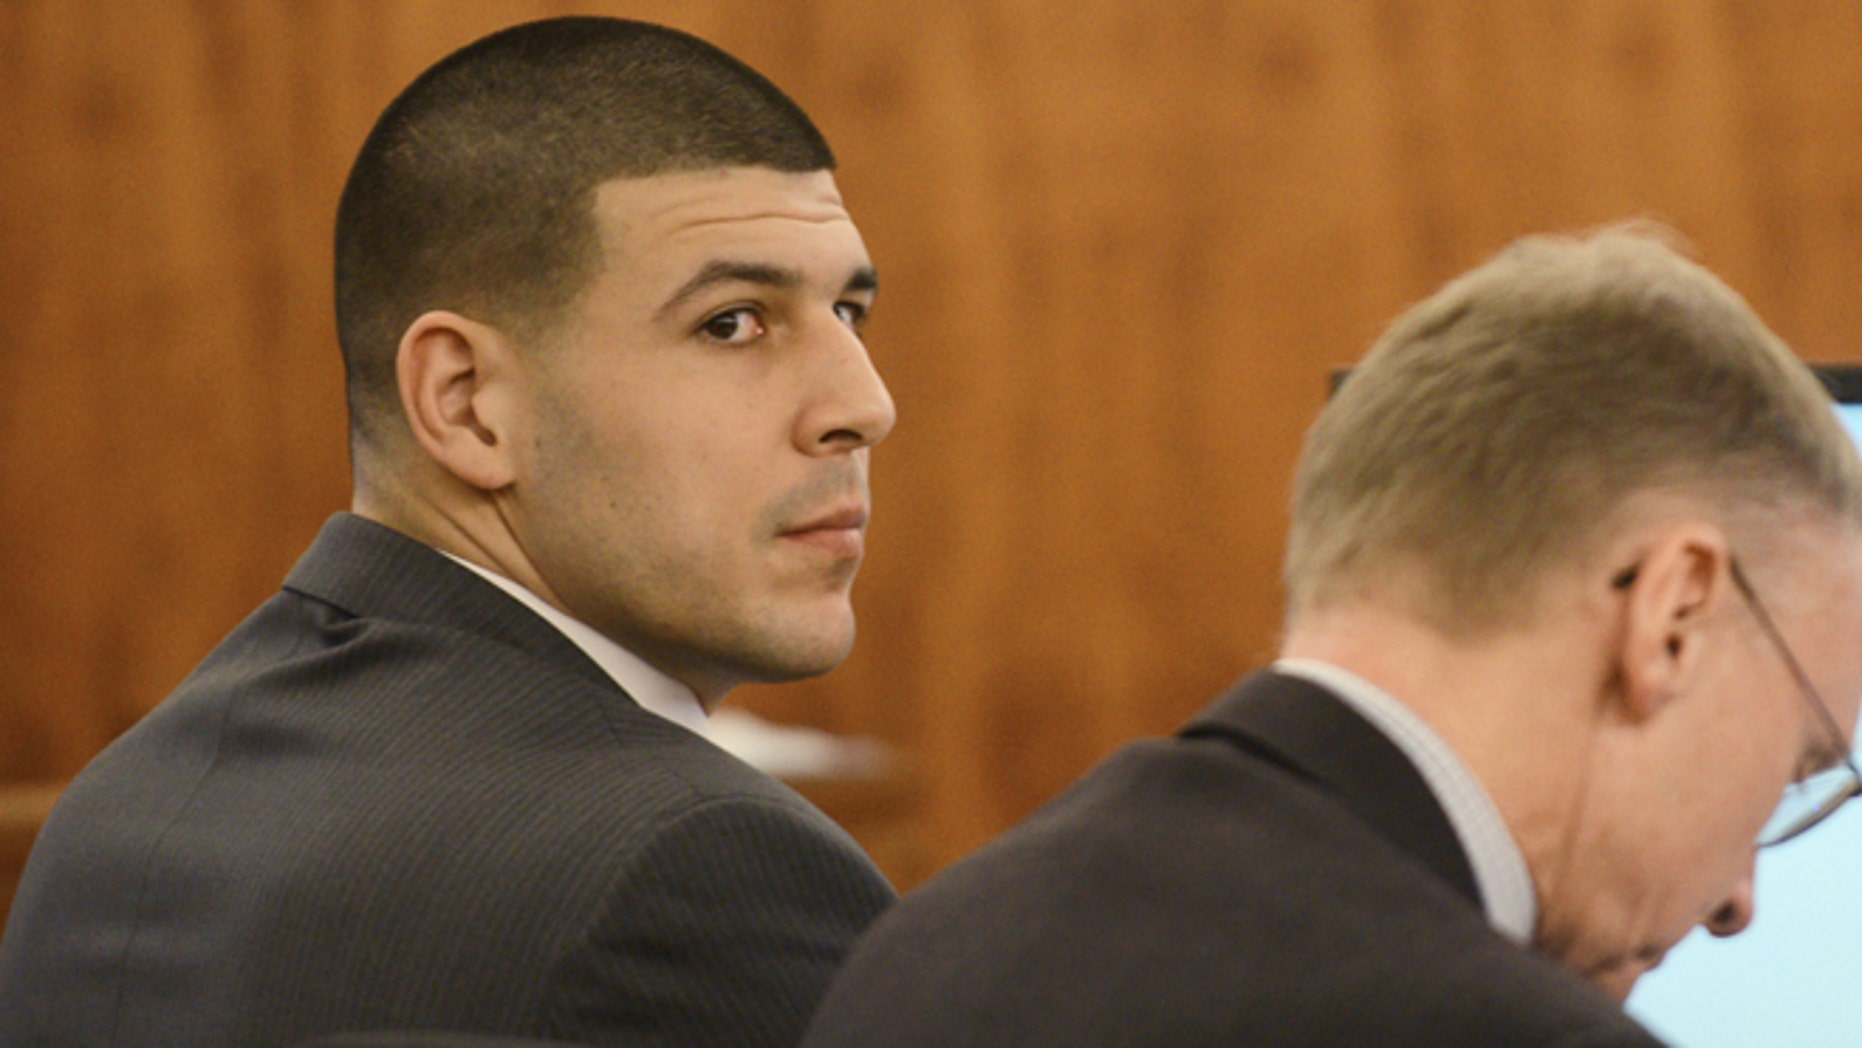 Aaron Hernandez, left, sits with his attorney Charles Rankin during his trial  at Bristol Superior Court on Wednesday, Feb. 11, 2015 in Fall River, Mass. (AP Photo/The Boston Herald, Ted Fitzgerald, Pool)